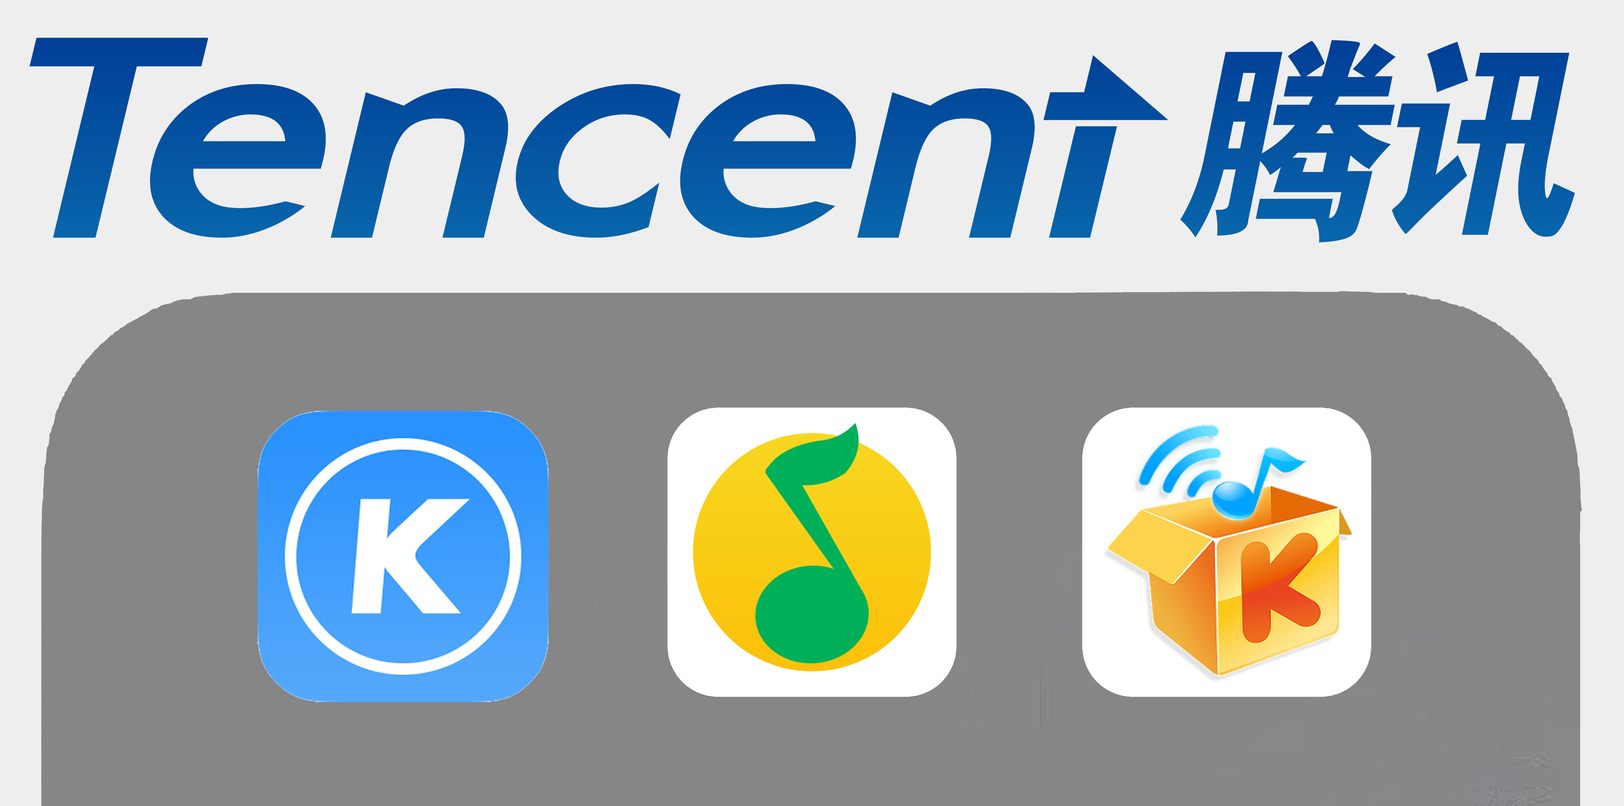 Music Experience in China: Tencent, unstoppable leader